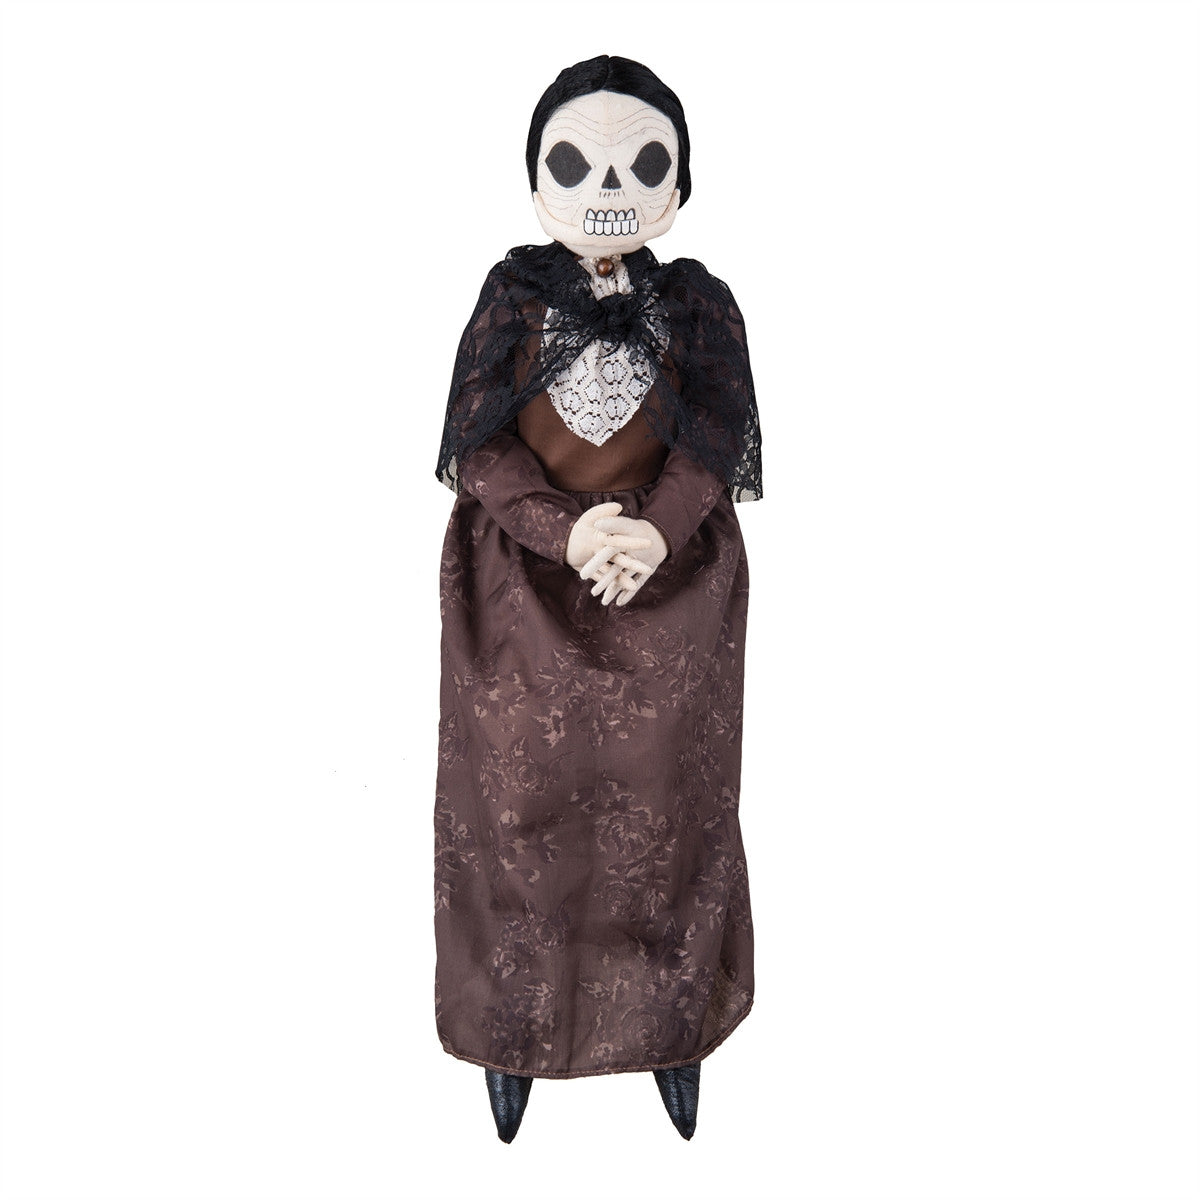 Olga Old Woman Skeleton Fabric Halloween Doll by Joe Spencer